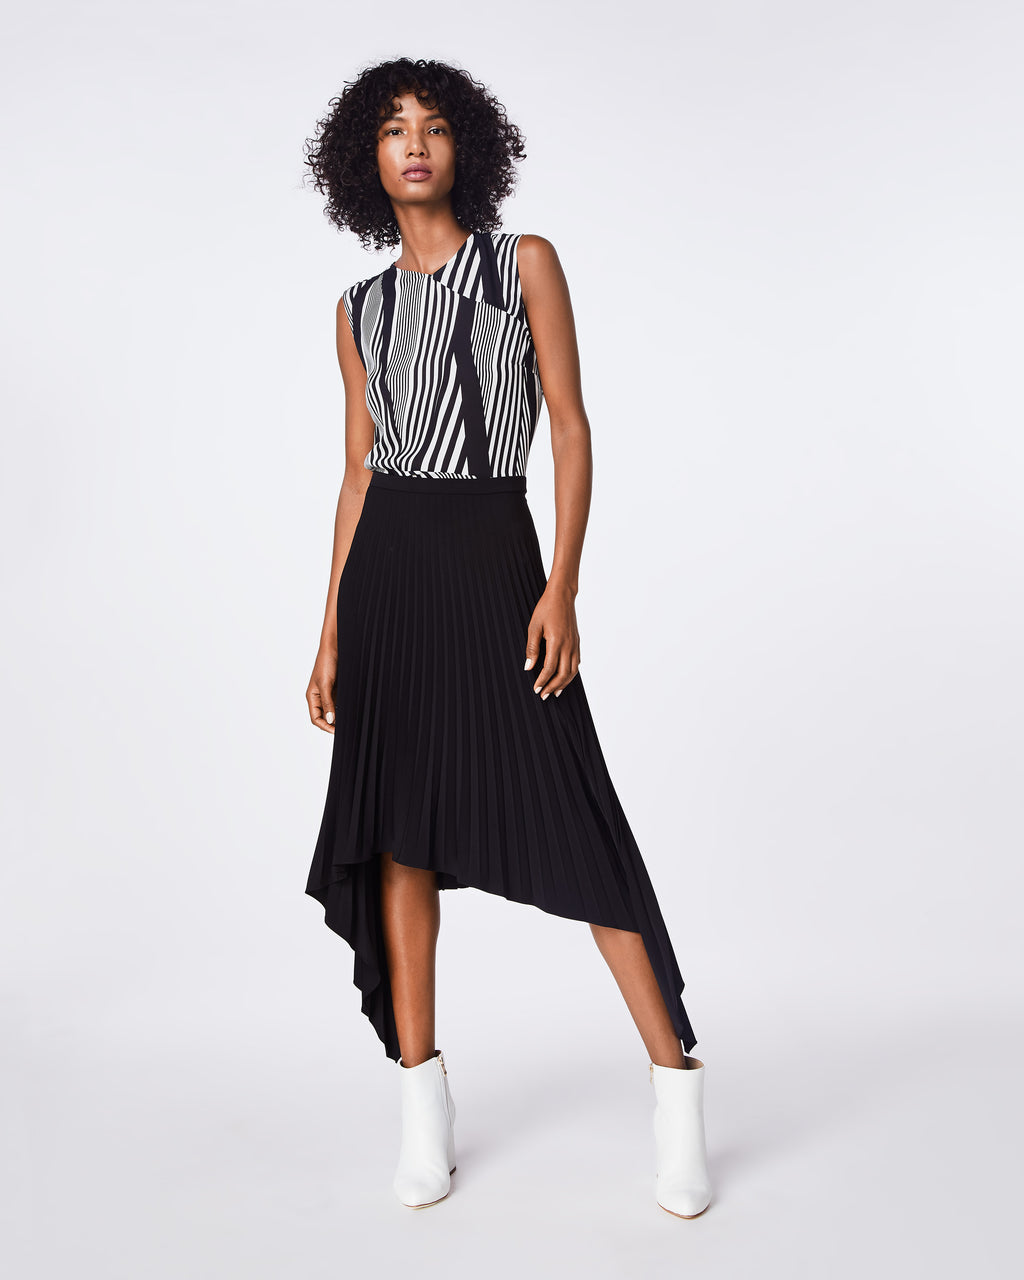 BF10360 - PLEATED SKIRT - bottoms - skirts - ASYMMETRICALLY CUT, OUR PLEATED SKIRT HITS AT THE WAISTLINE HAS A FLOWY FIT. IT HAS A 1 INCH WAISTBAND AND A CONCEALED ZIPPER WITH A HOOK AND EYE.